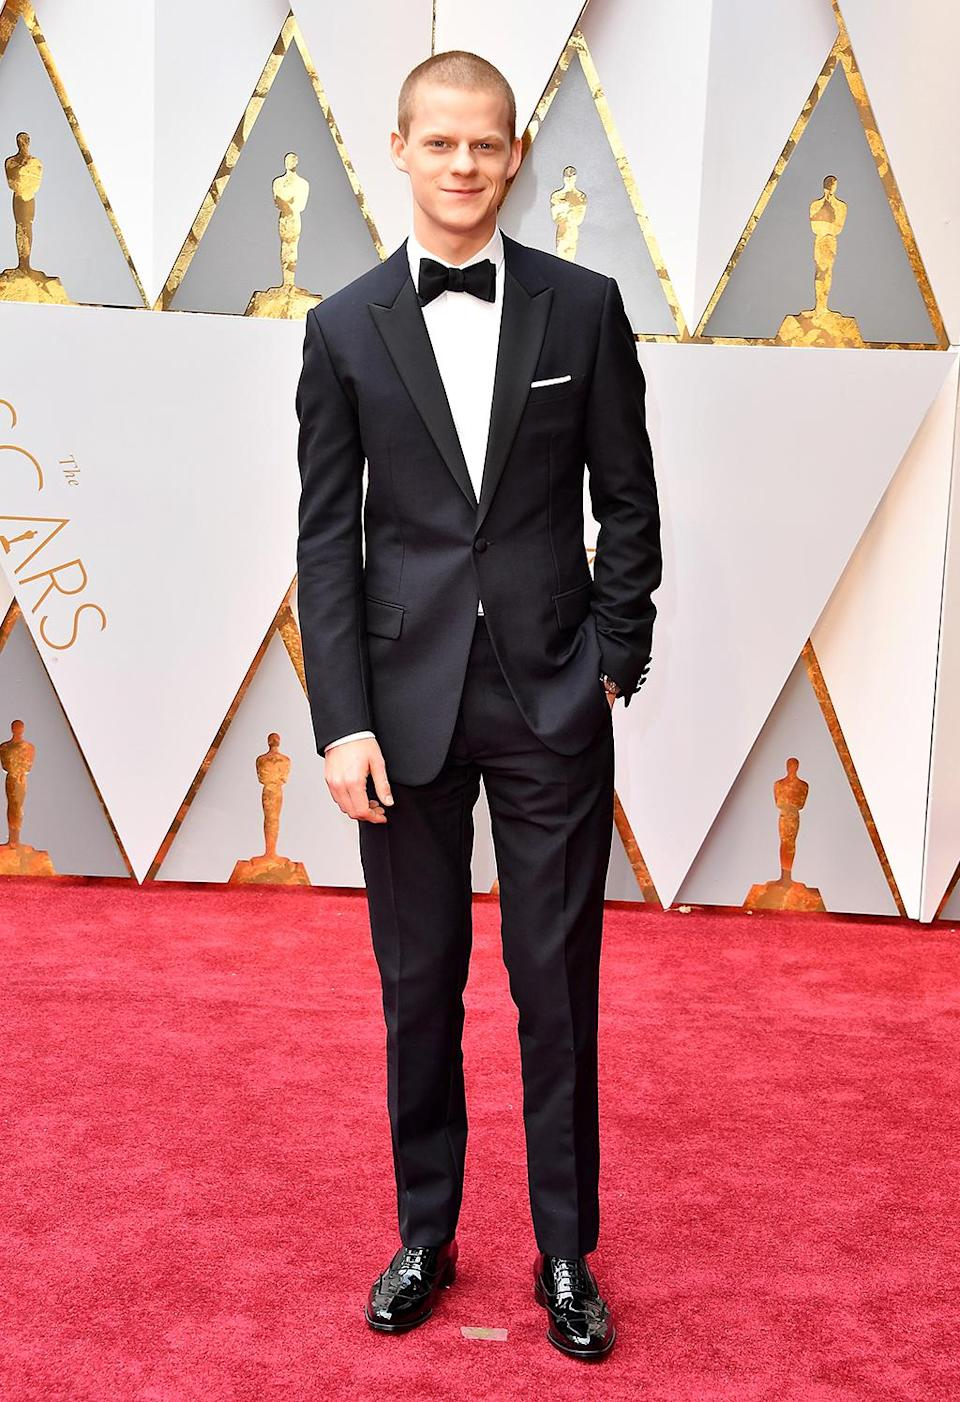 <p>Actor Lucas Hedges attends the 89th Annual Academy Awards at Hollywood & Highland Center on February 26, 2017 in Hollywood, California. (Photo by Steve Granitz/WireImage) </p>